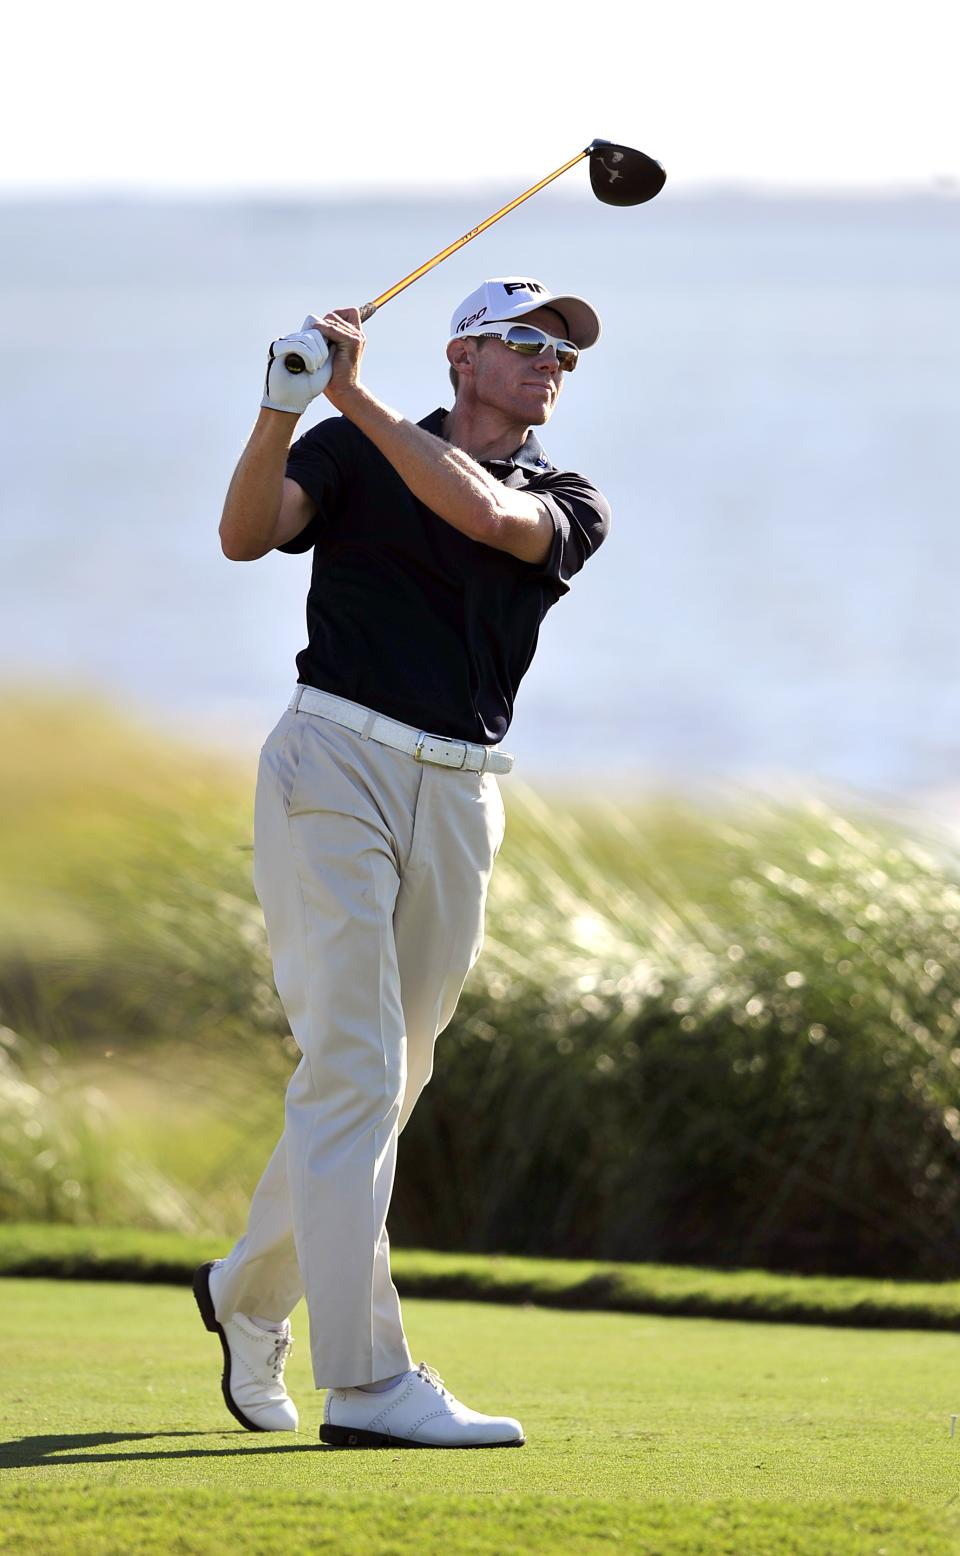 Nick O'Hern watches his drive down the 14th fairway during the second round of the McGladrey Classic golf tournament at the Sea Island Golf Club on St. Simons Island, Ga., Friday, Oct. 14, 2011. (AP Photo/Stephen Morton)